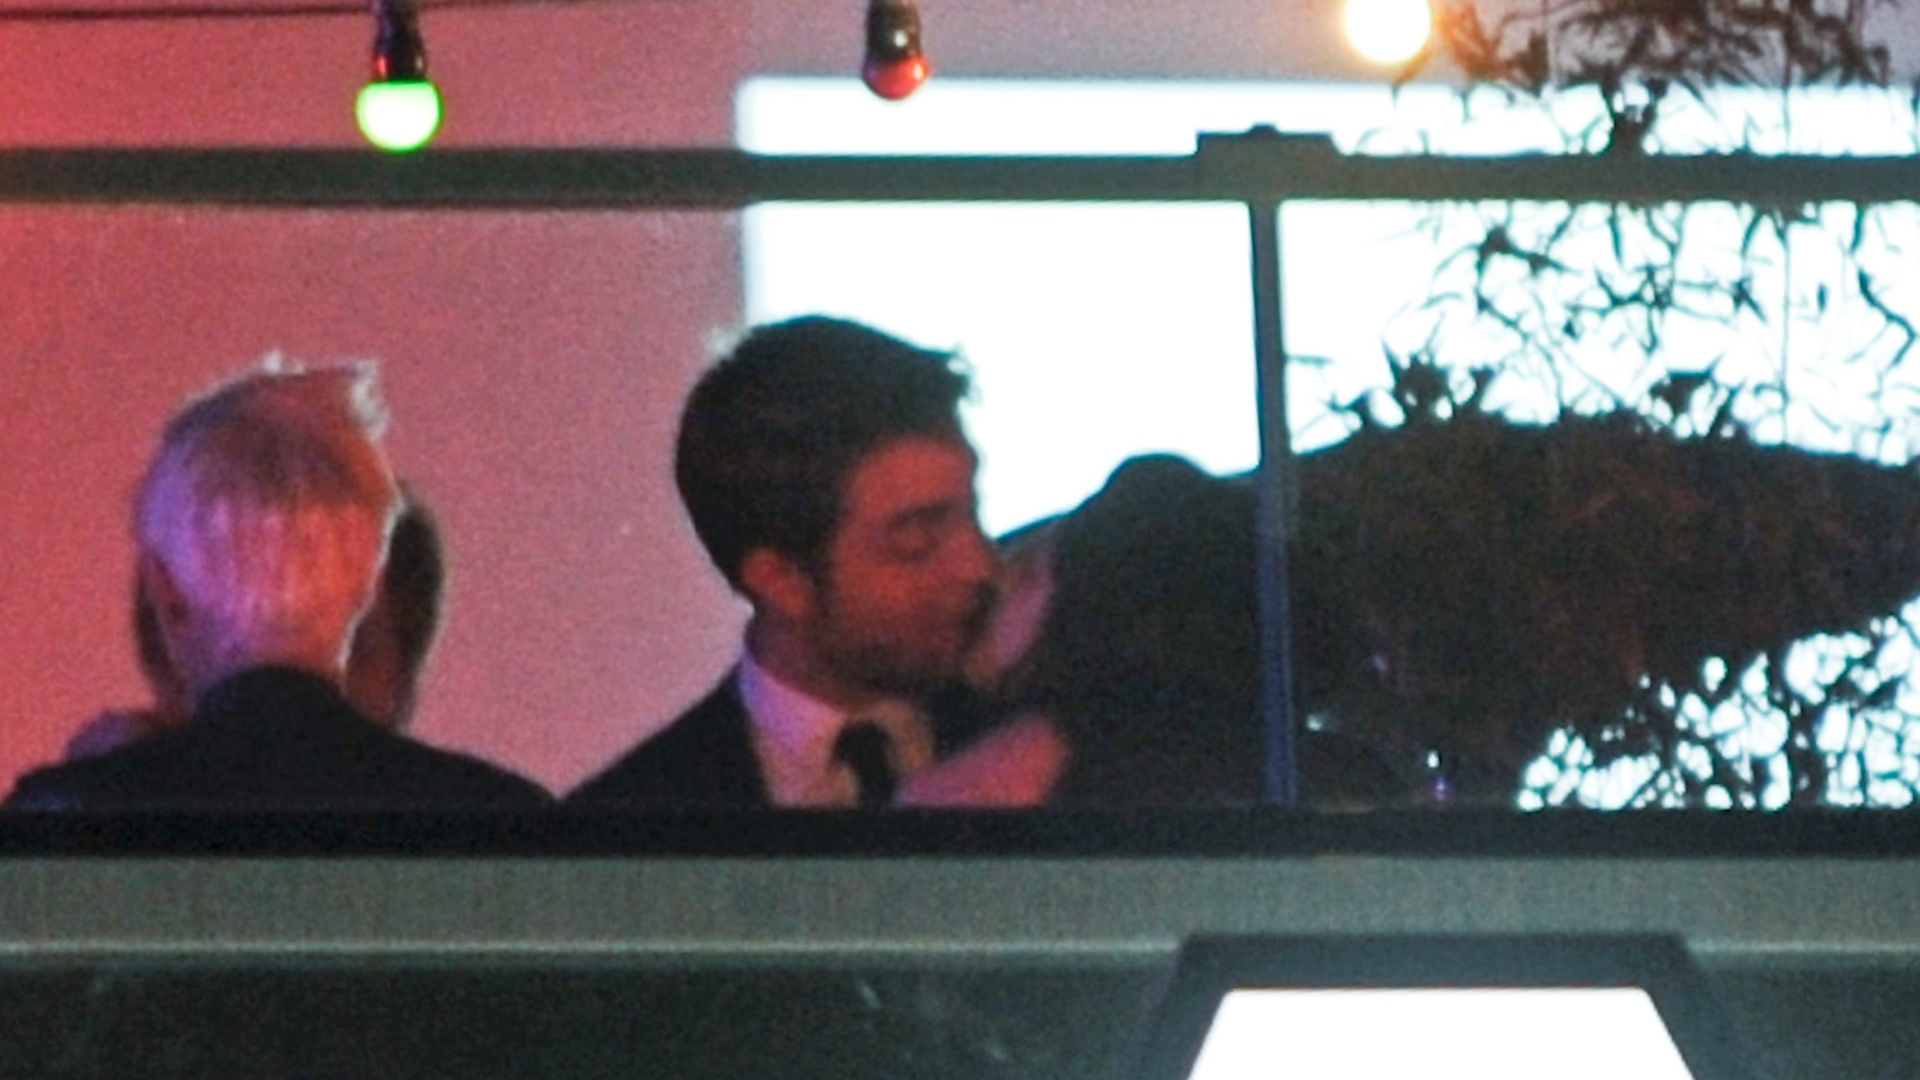 Robert Pattinson e Kristen Stewart se beijam em Cannes (24/5/12)